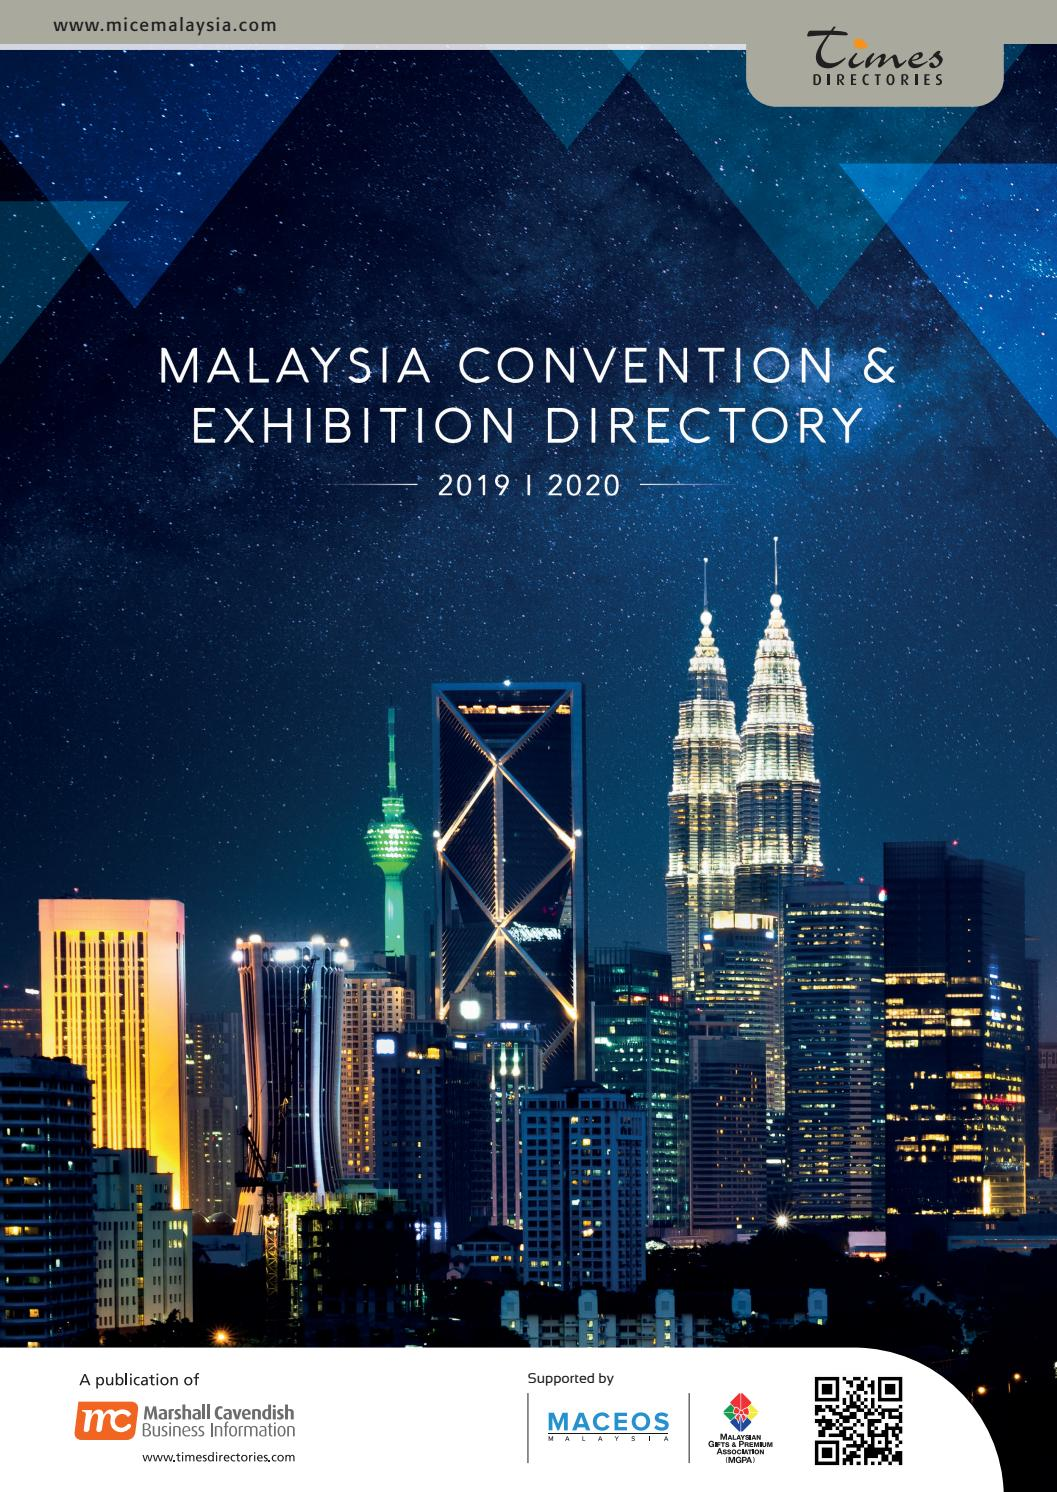 Malaysia Convention Exhibition Directory 2019 2020 By Marshall Cavendish M Sdn Bhd Issuu